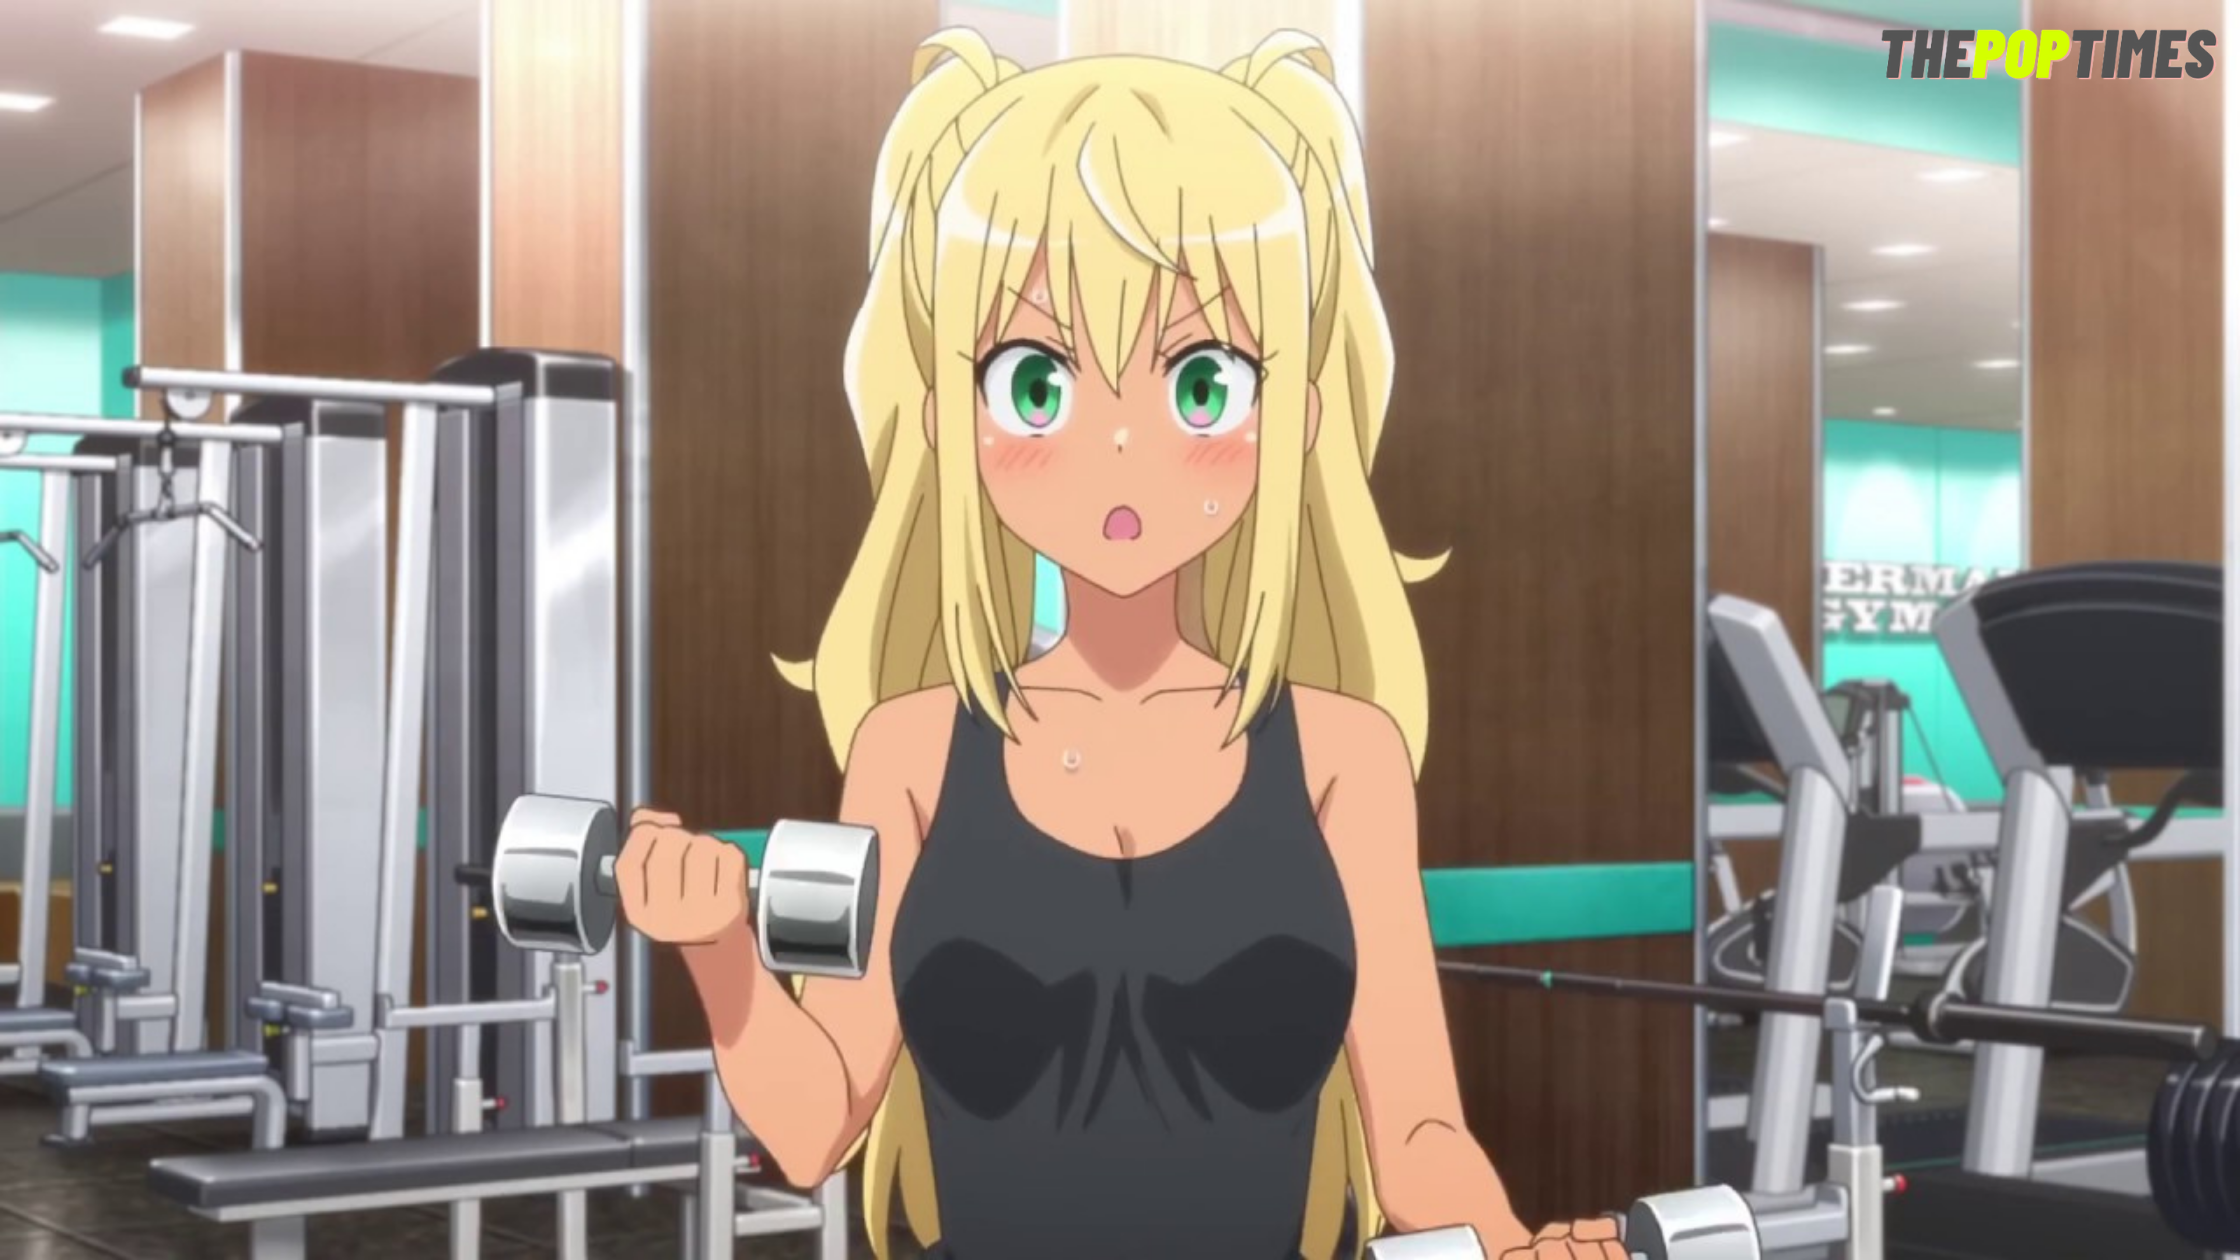 How Many Kilograms Of Dumbbells Can You Lift Season 2 release date